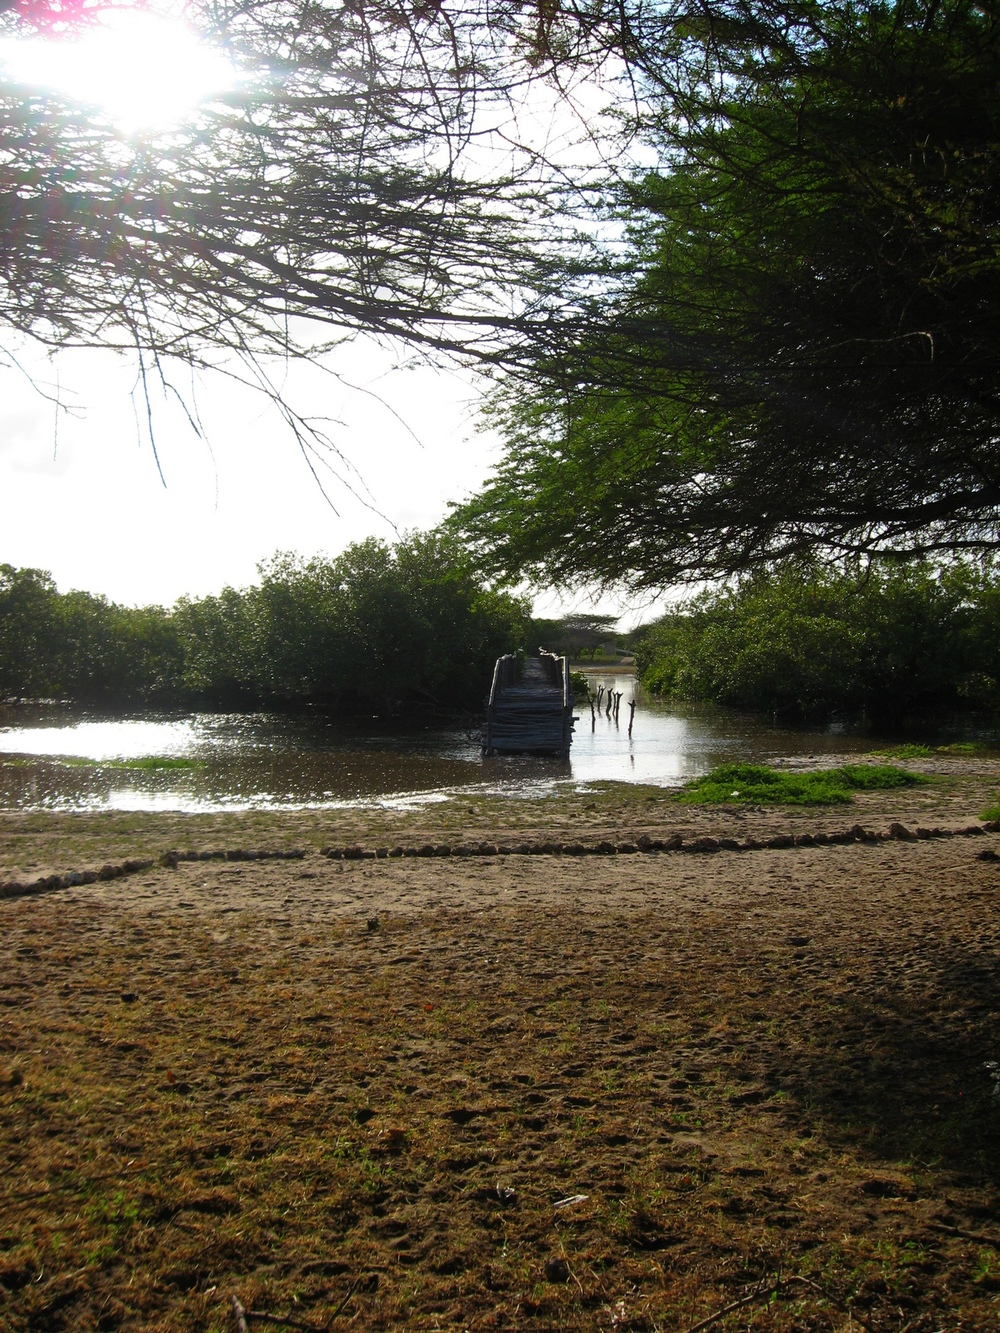 Bridge through mangroves, Lamu, Kenya